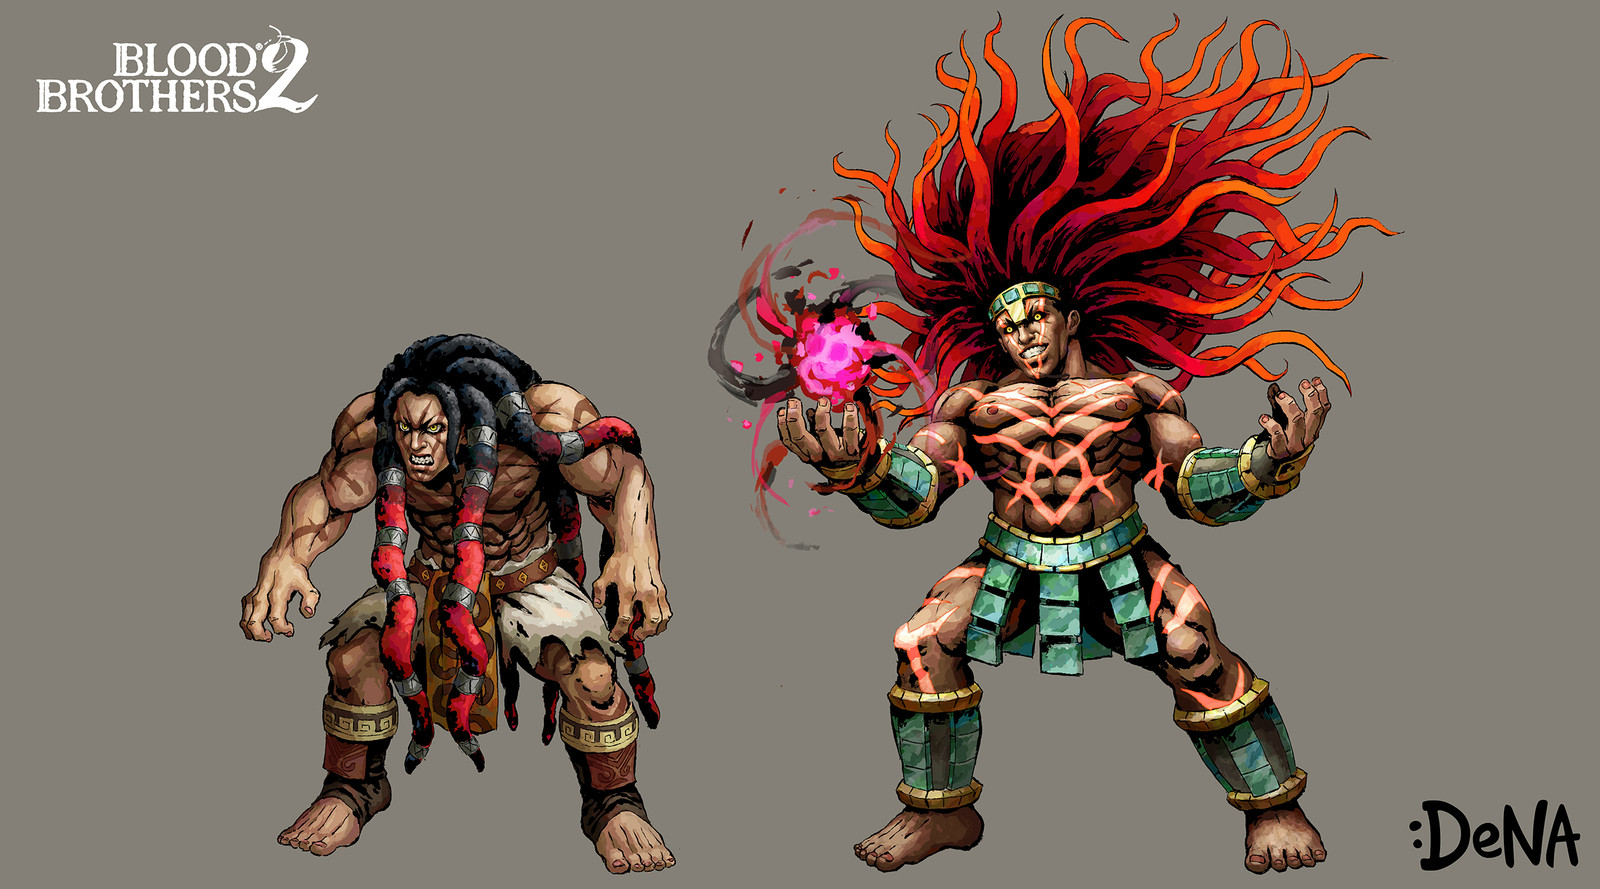 Blood Brothers 2 Characters Ft. Street Fighter